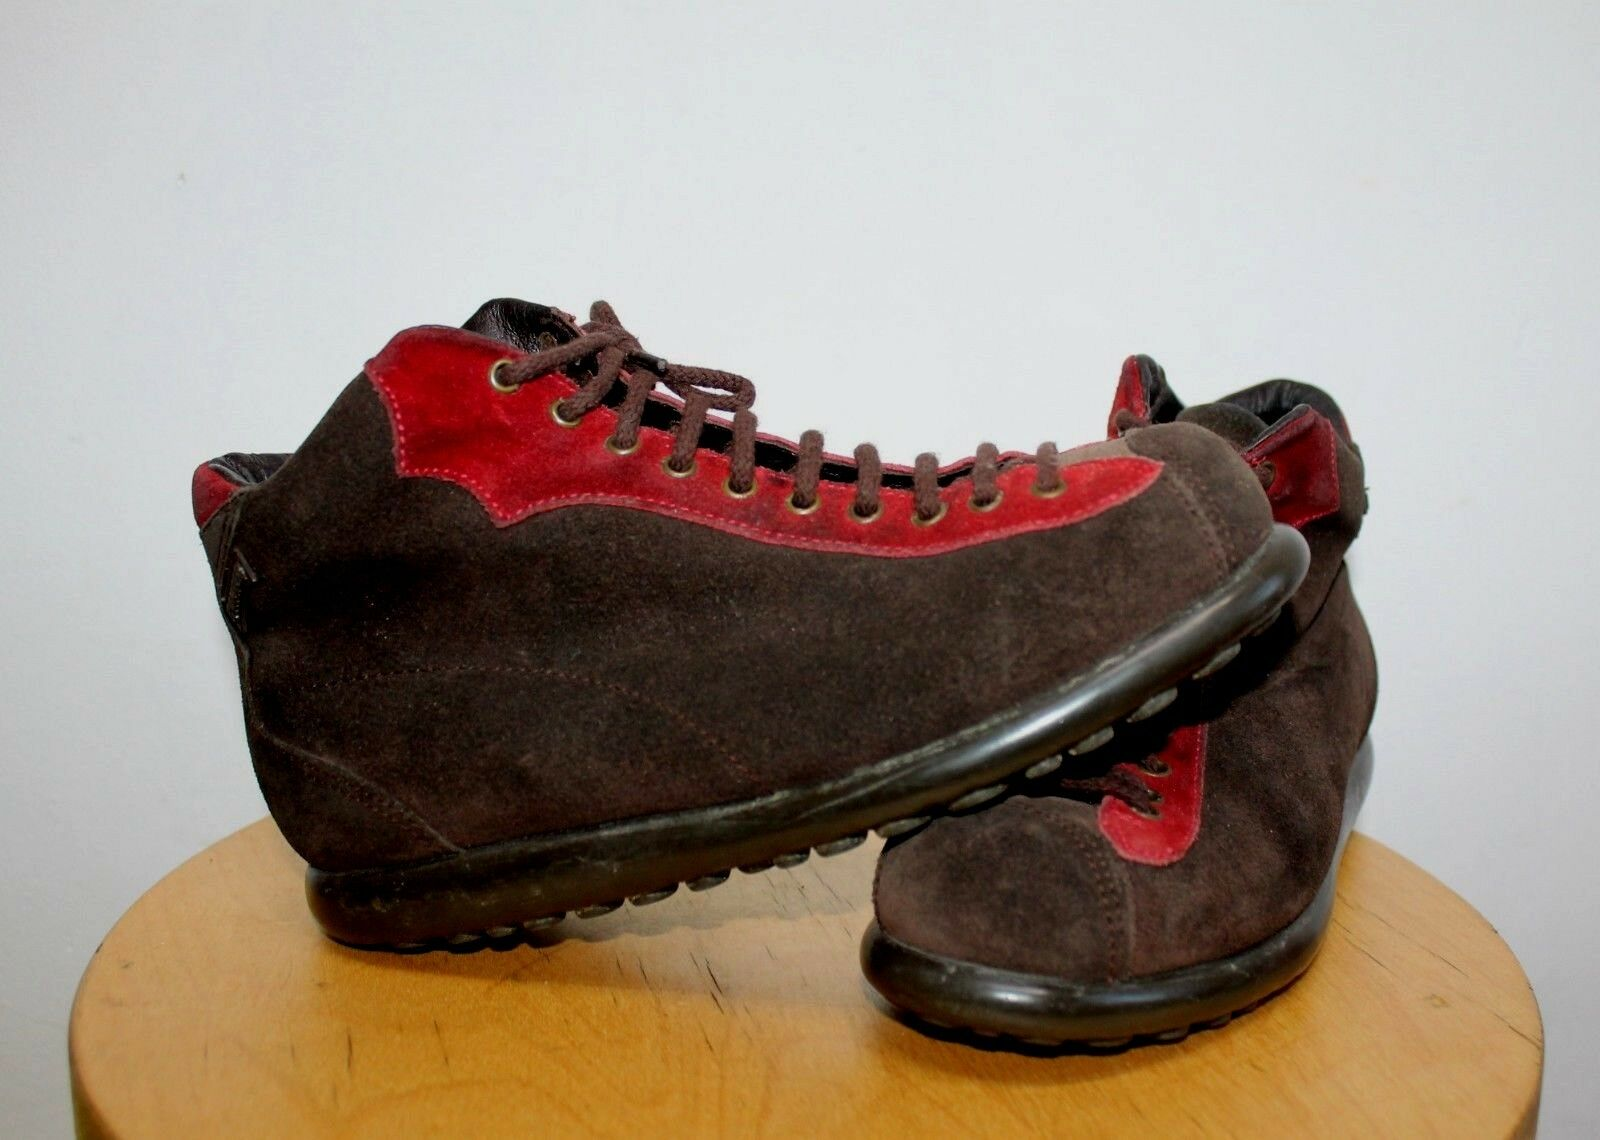 Camper Pelotas Bottes Bottines Chaussures Pointure Rouge Marron à Lacets EU 36 UK 3